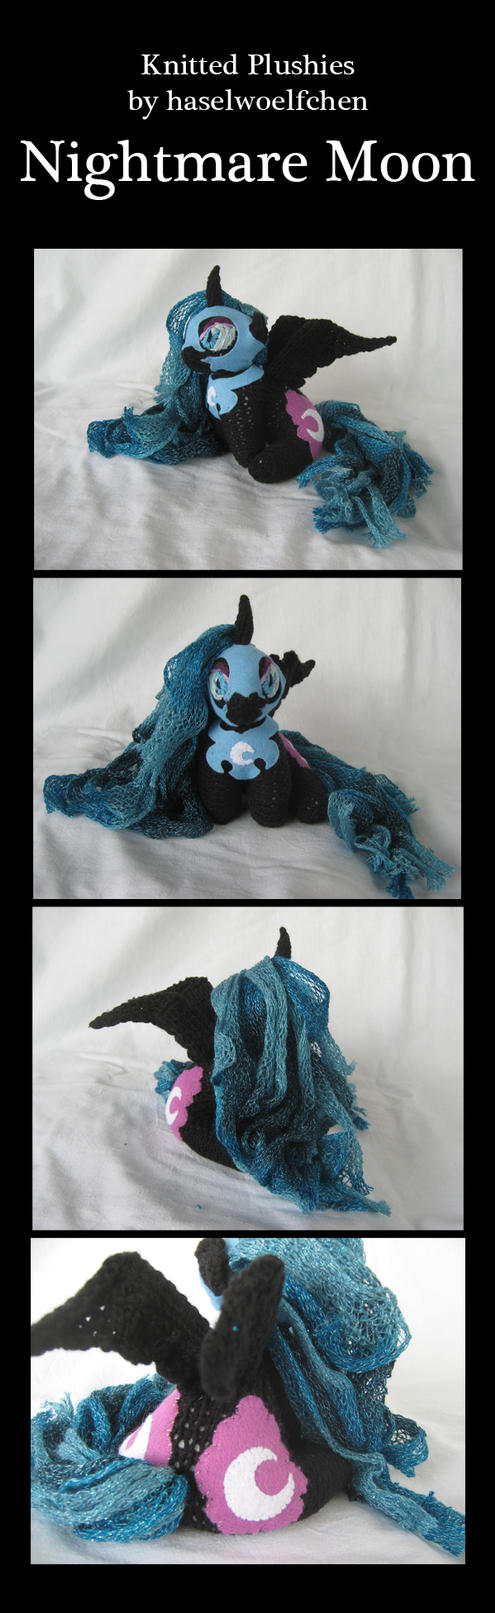 Knitted Plushies - Nightmare Moon by haselwoelfchen